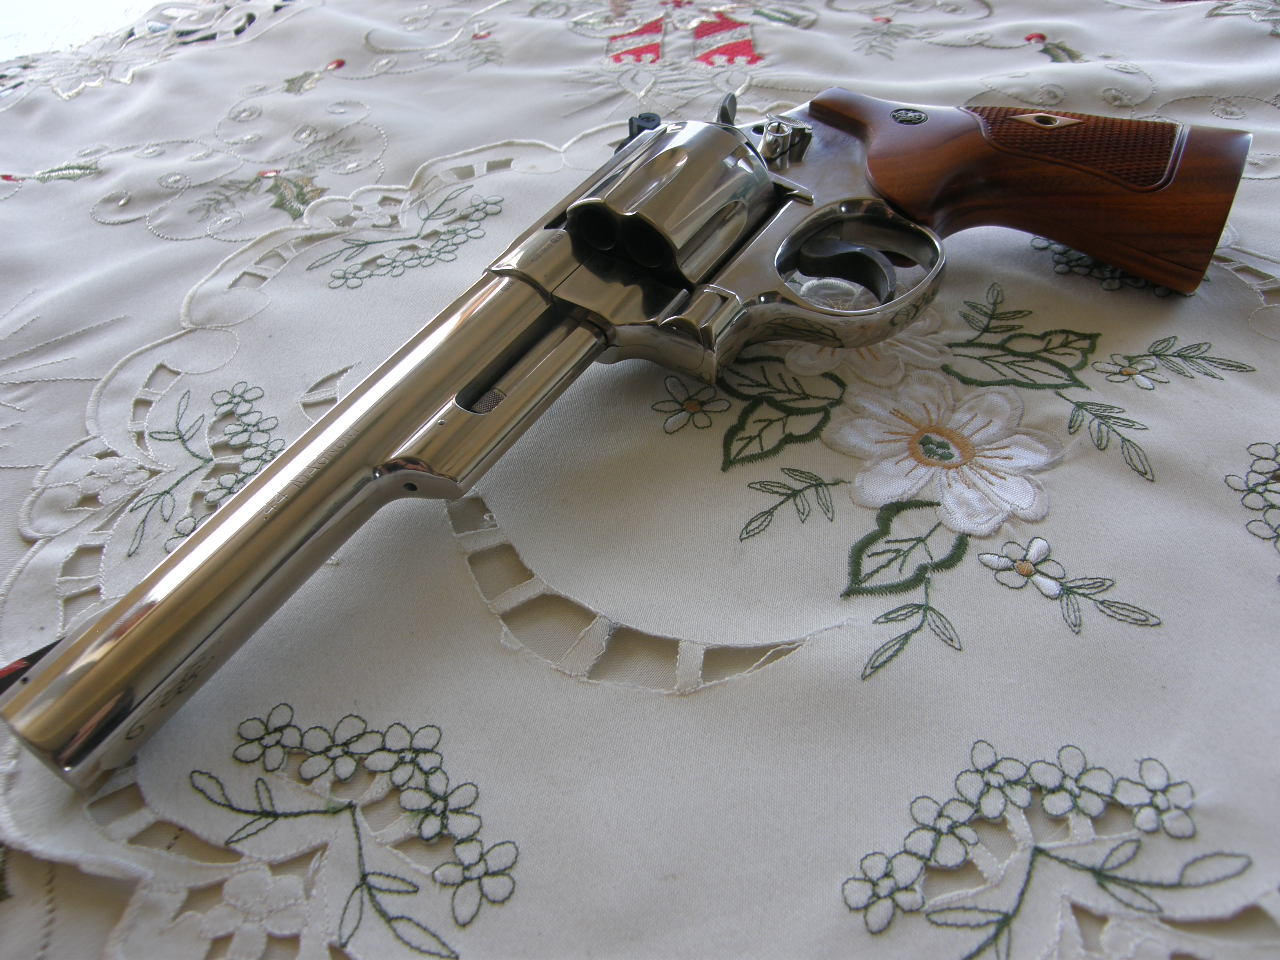 Revolver Smith Wesson Mod. 29 v.č. CLY 4934 r. 44 Mag